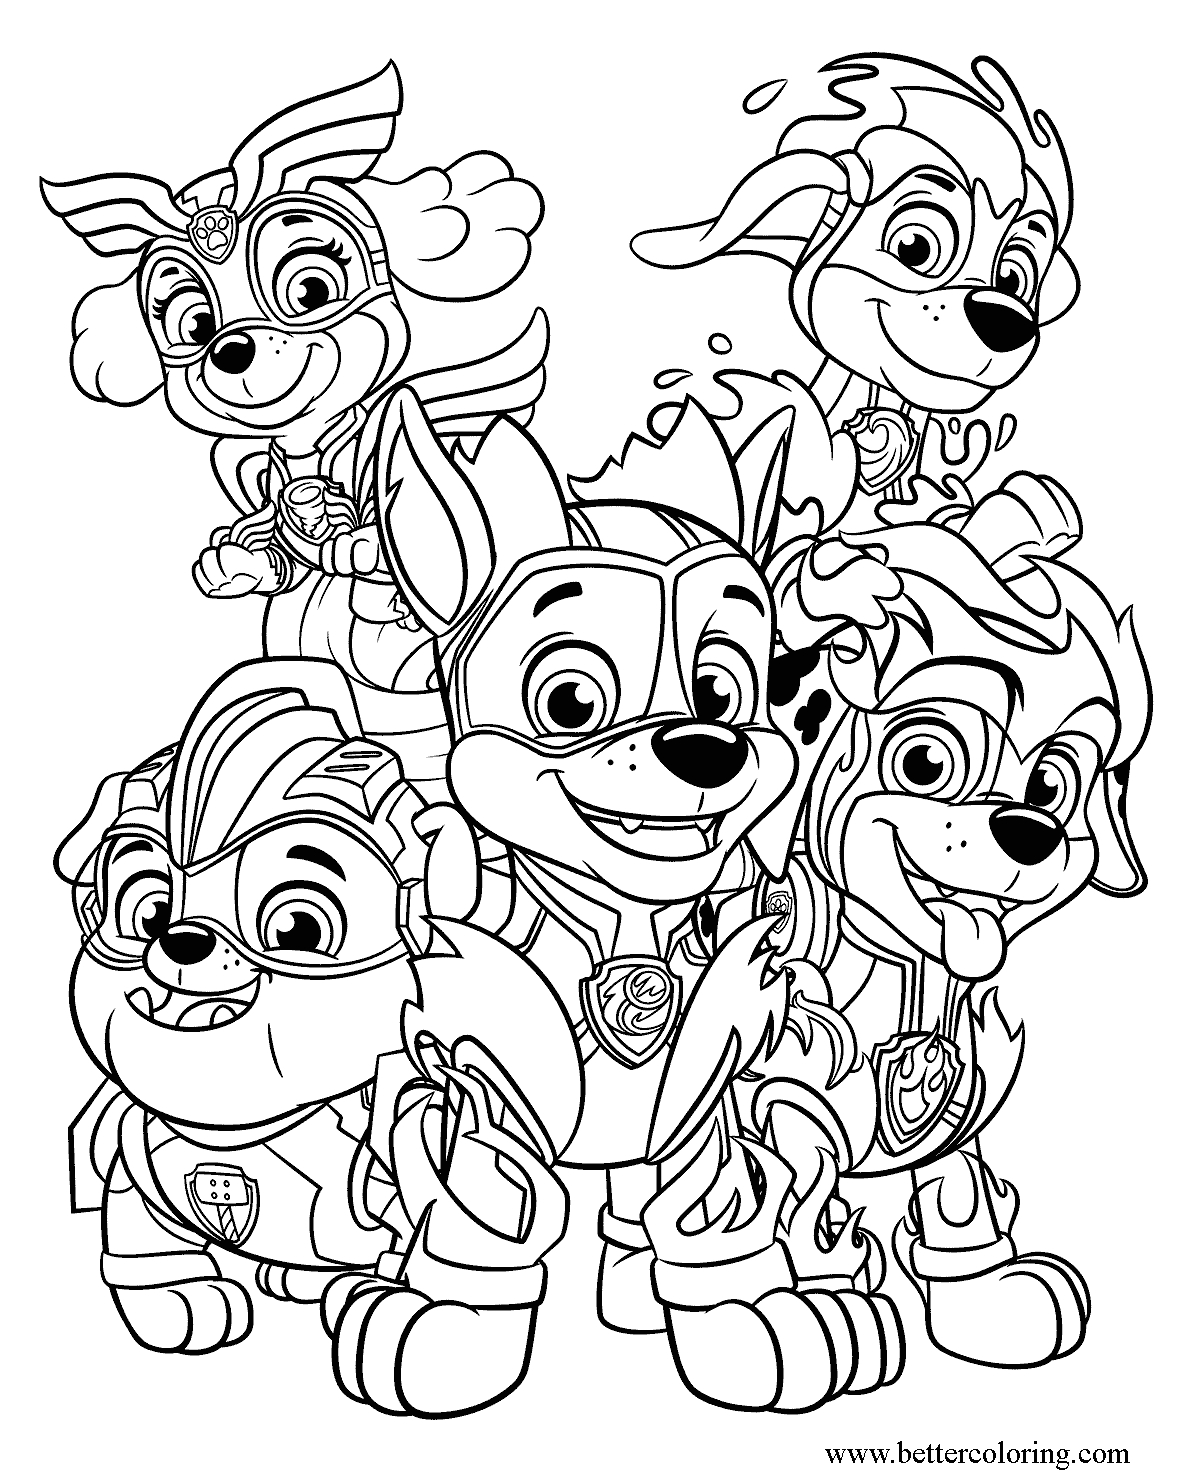 Free Printable Paw Patrol Mighty Pups Coloring Pages Free Download Mighty Pups Coloring Pages